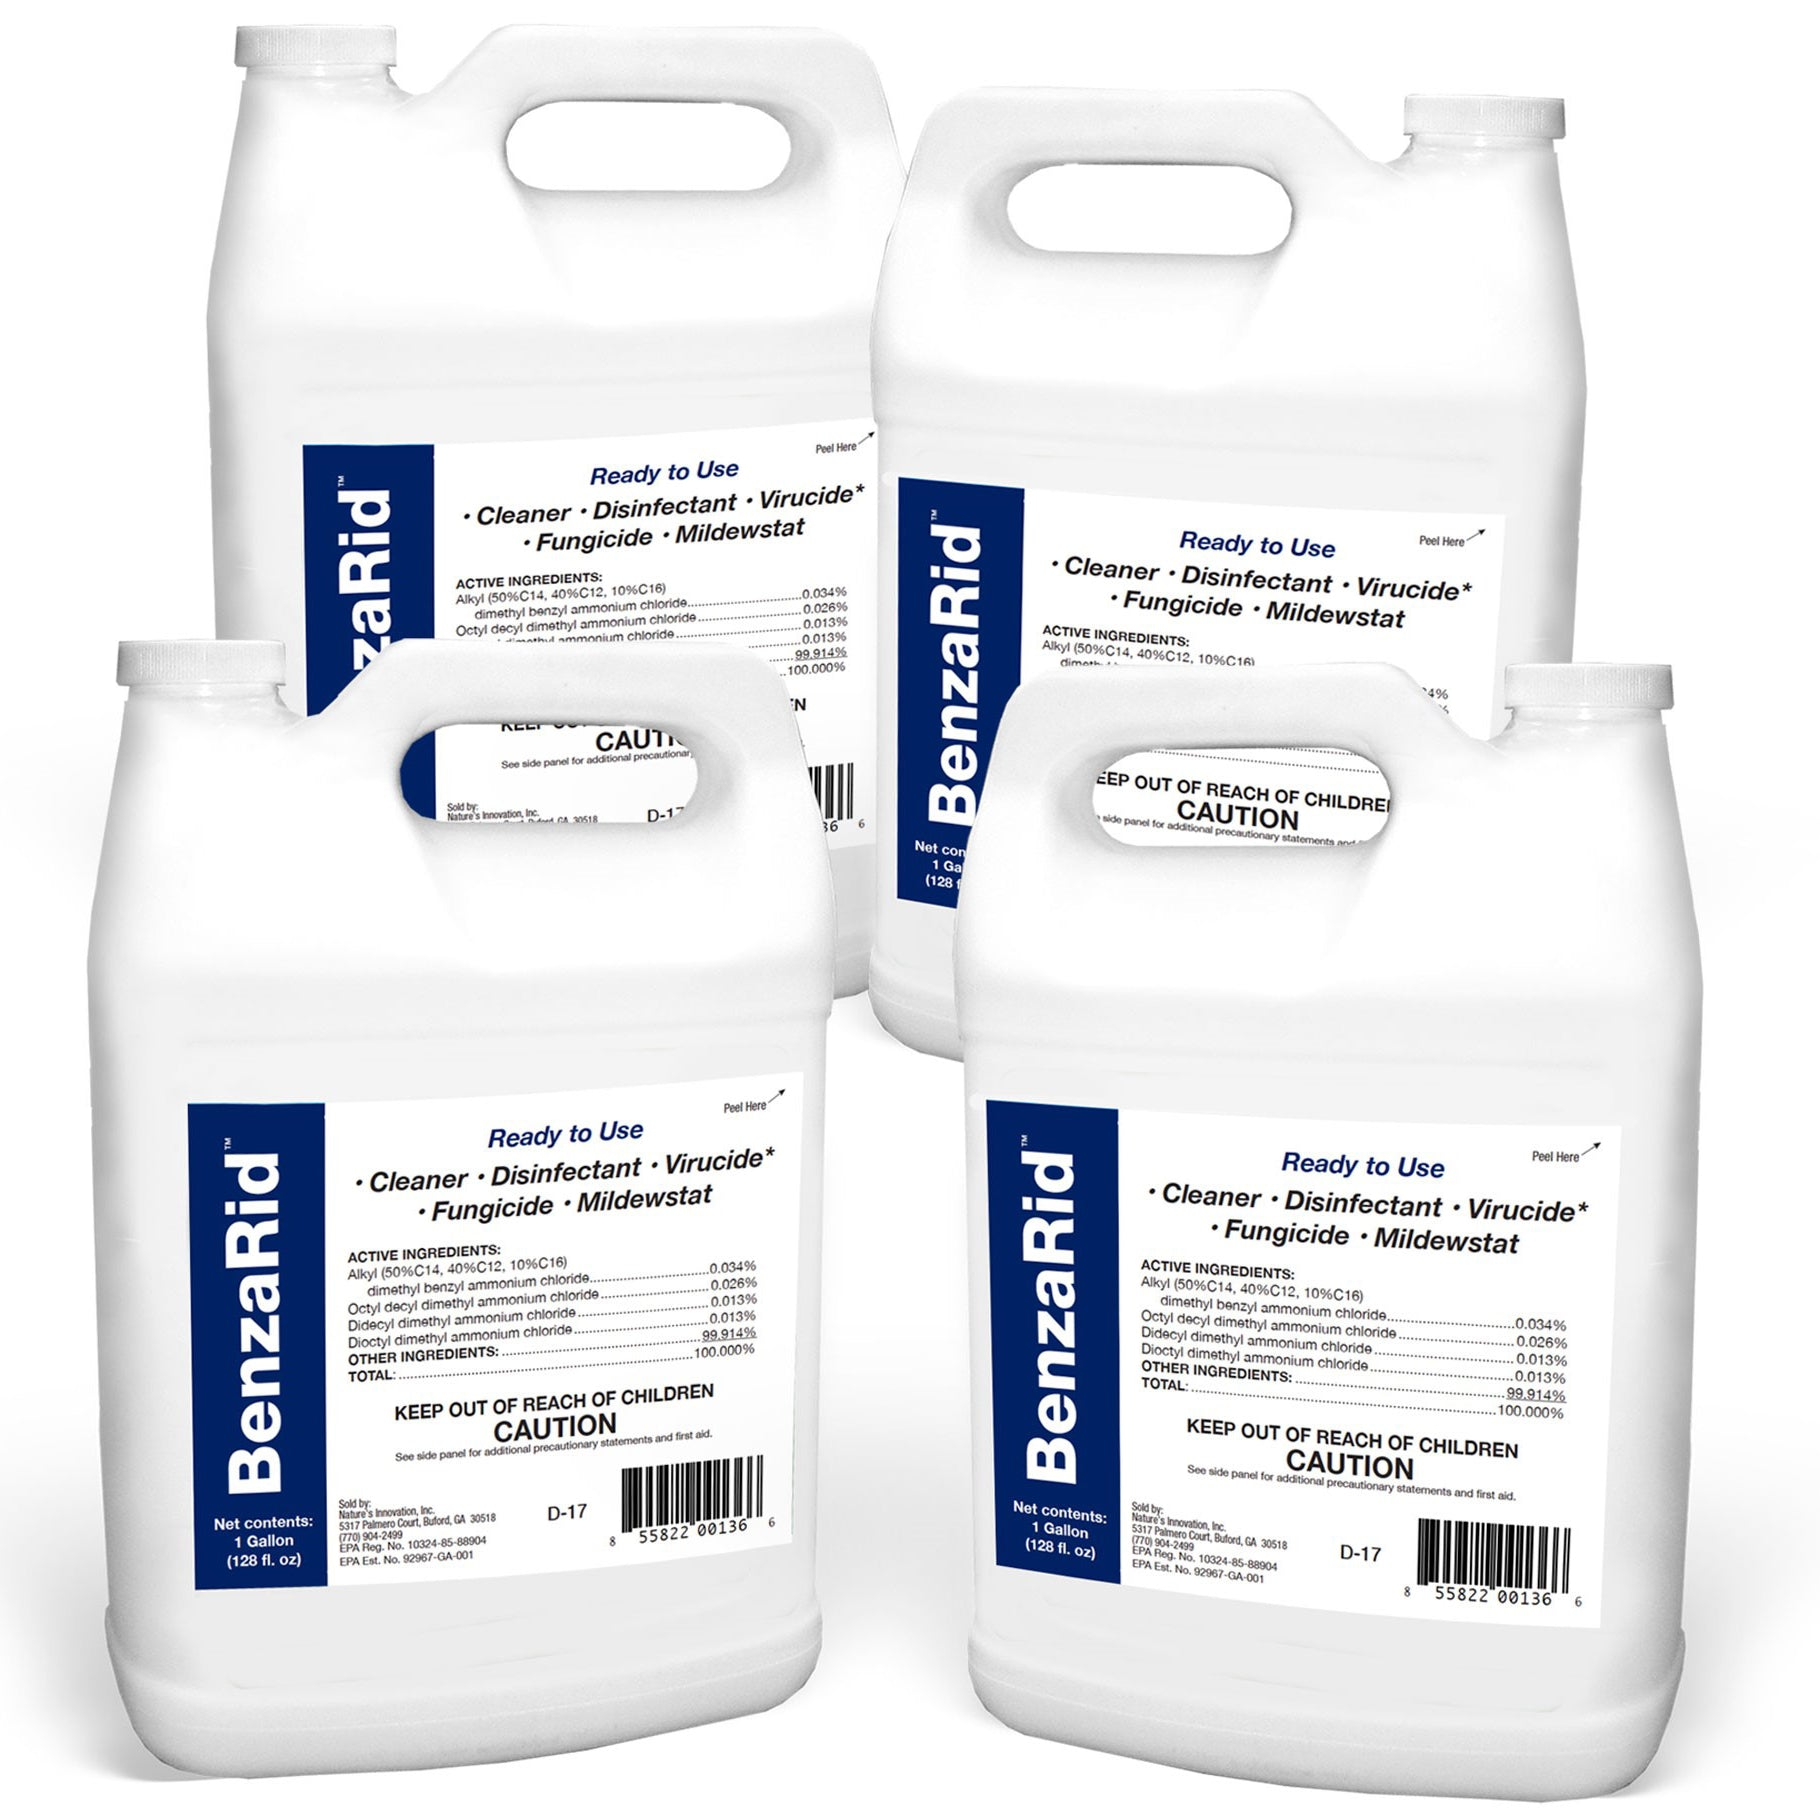 BenzaRid Hospital Grade Cleaner - Disinfectant, Virucide, Fungicide - 4  (1) Gallon